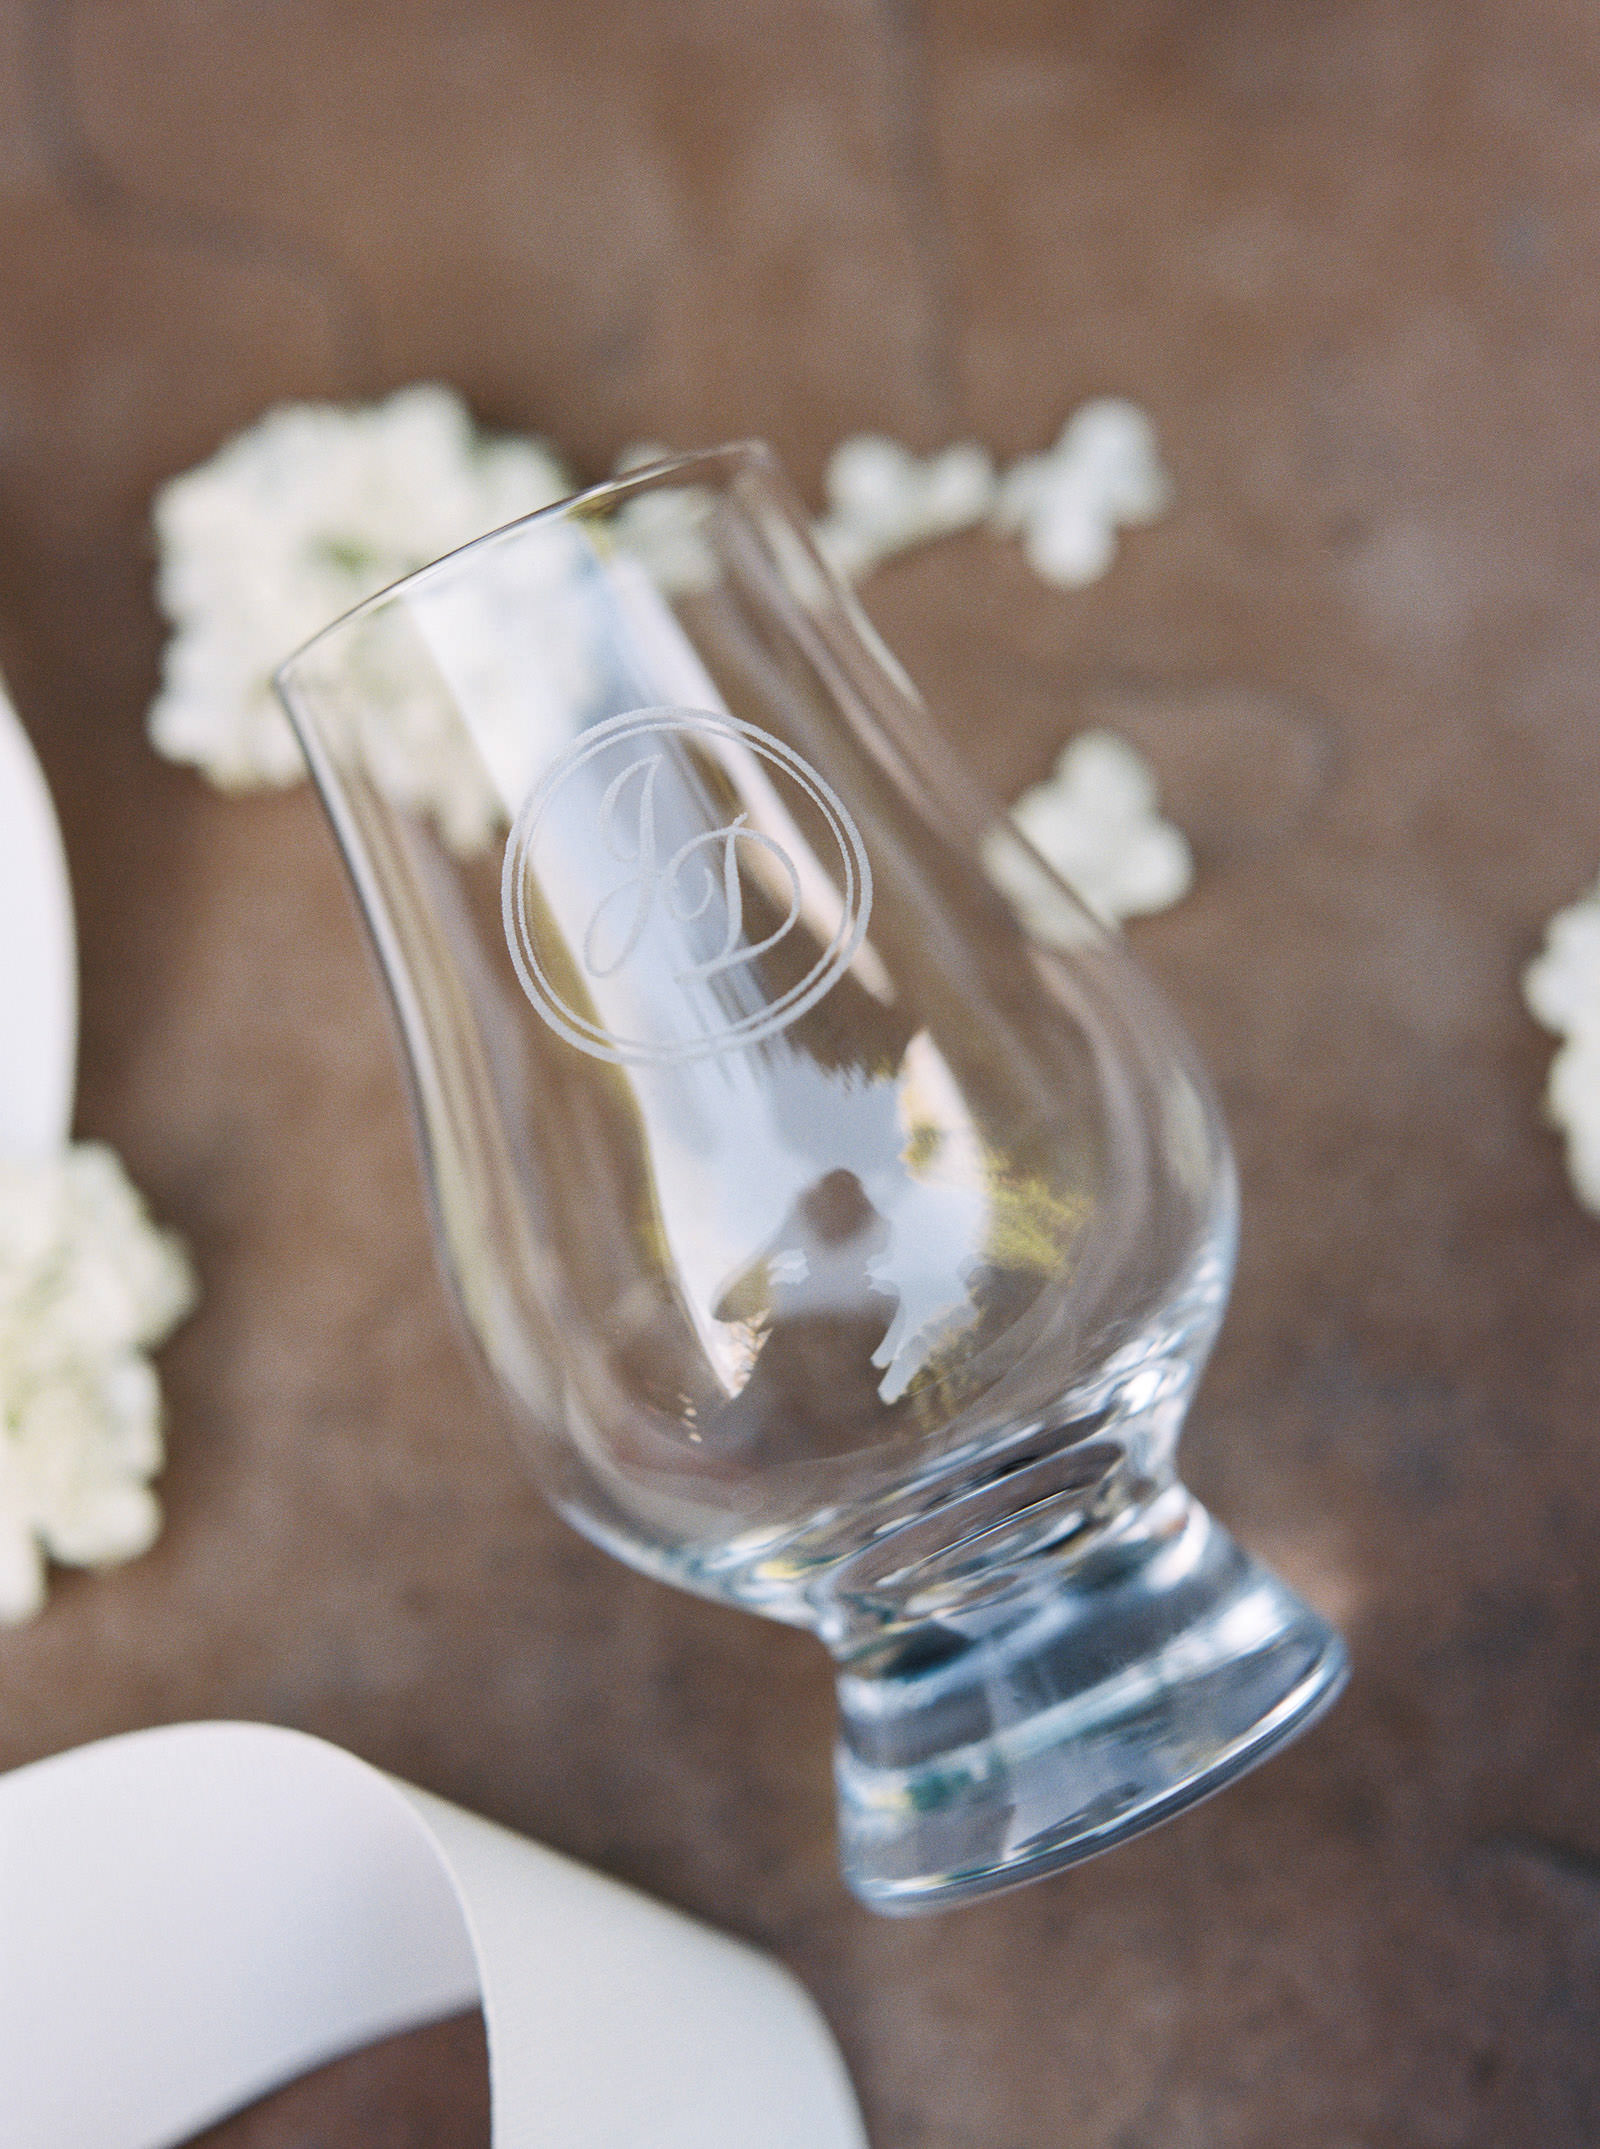 Customized glencairn glass wedding favors at a spring DeLille Cellars Wedding